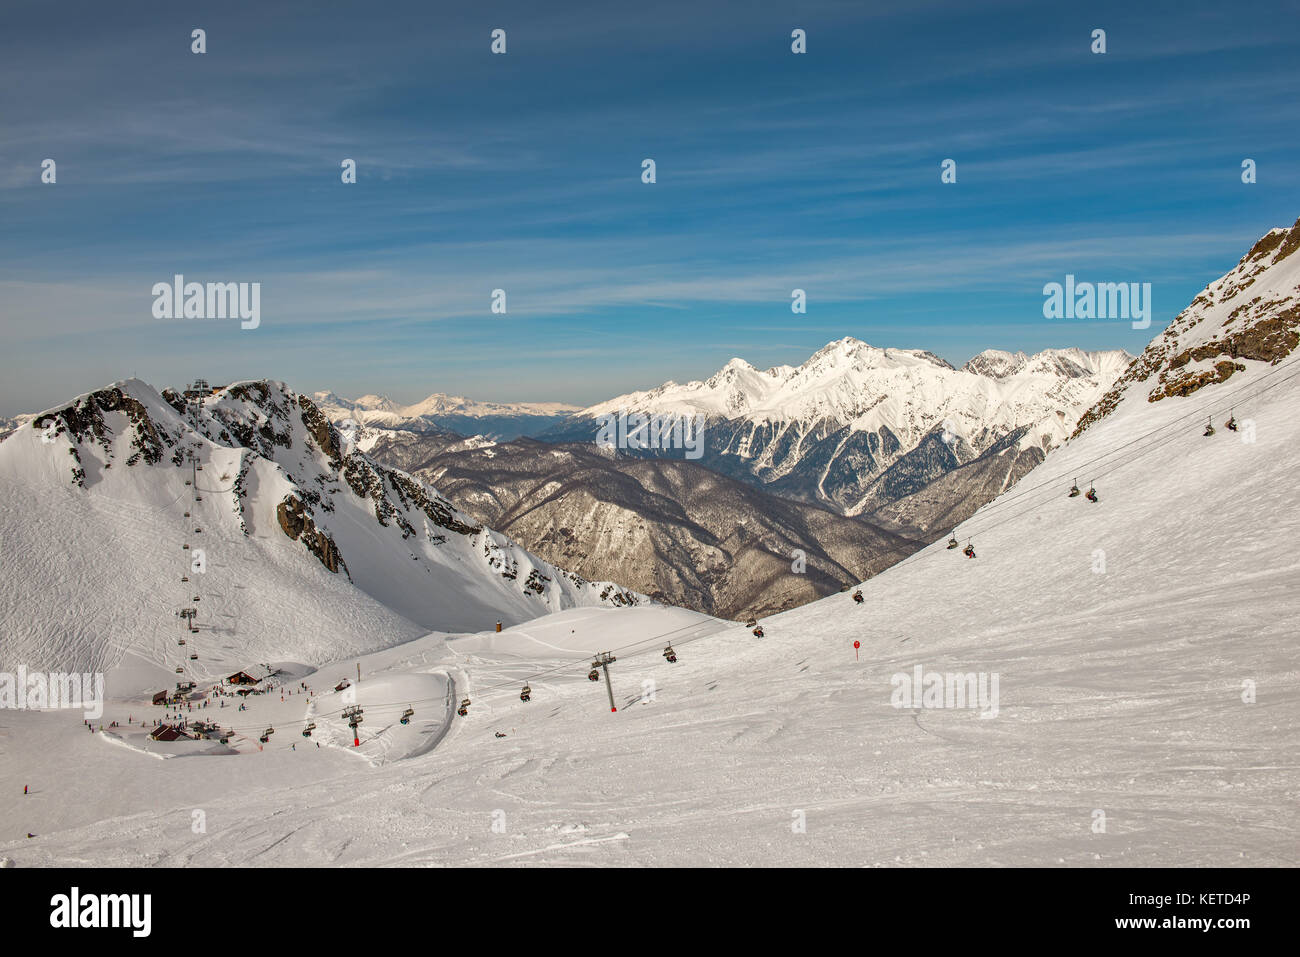 Winter mountain landscape - ski resort in Sochi, Russia - Stock Image